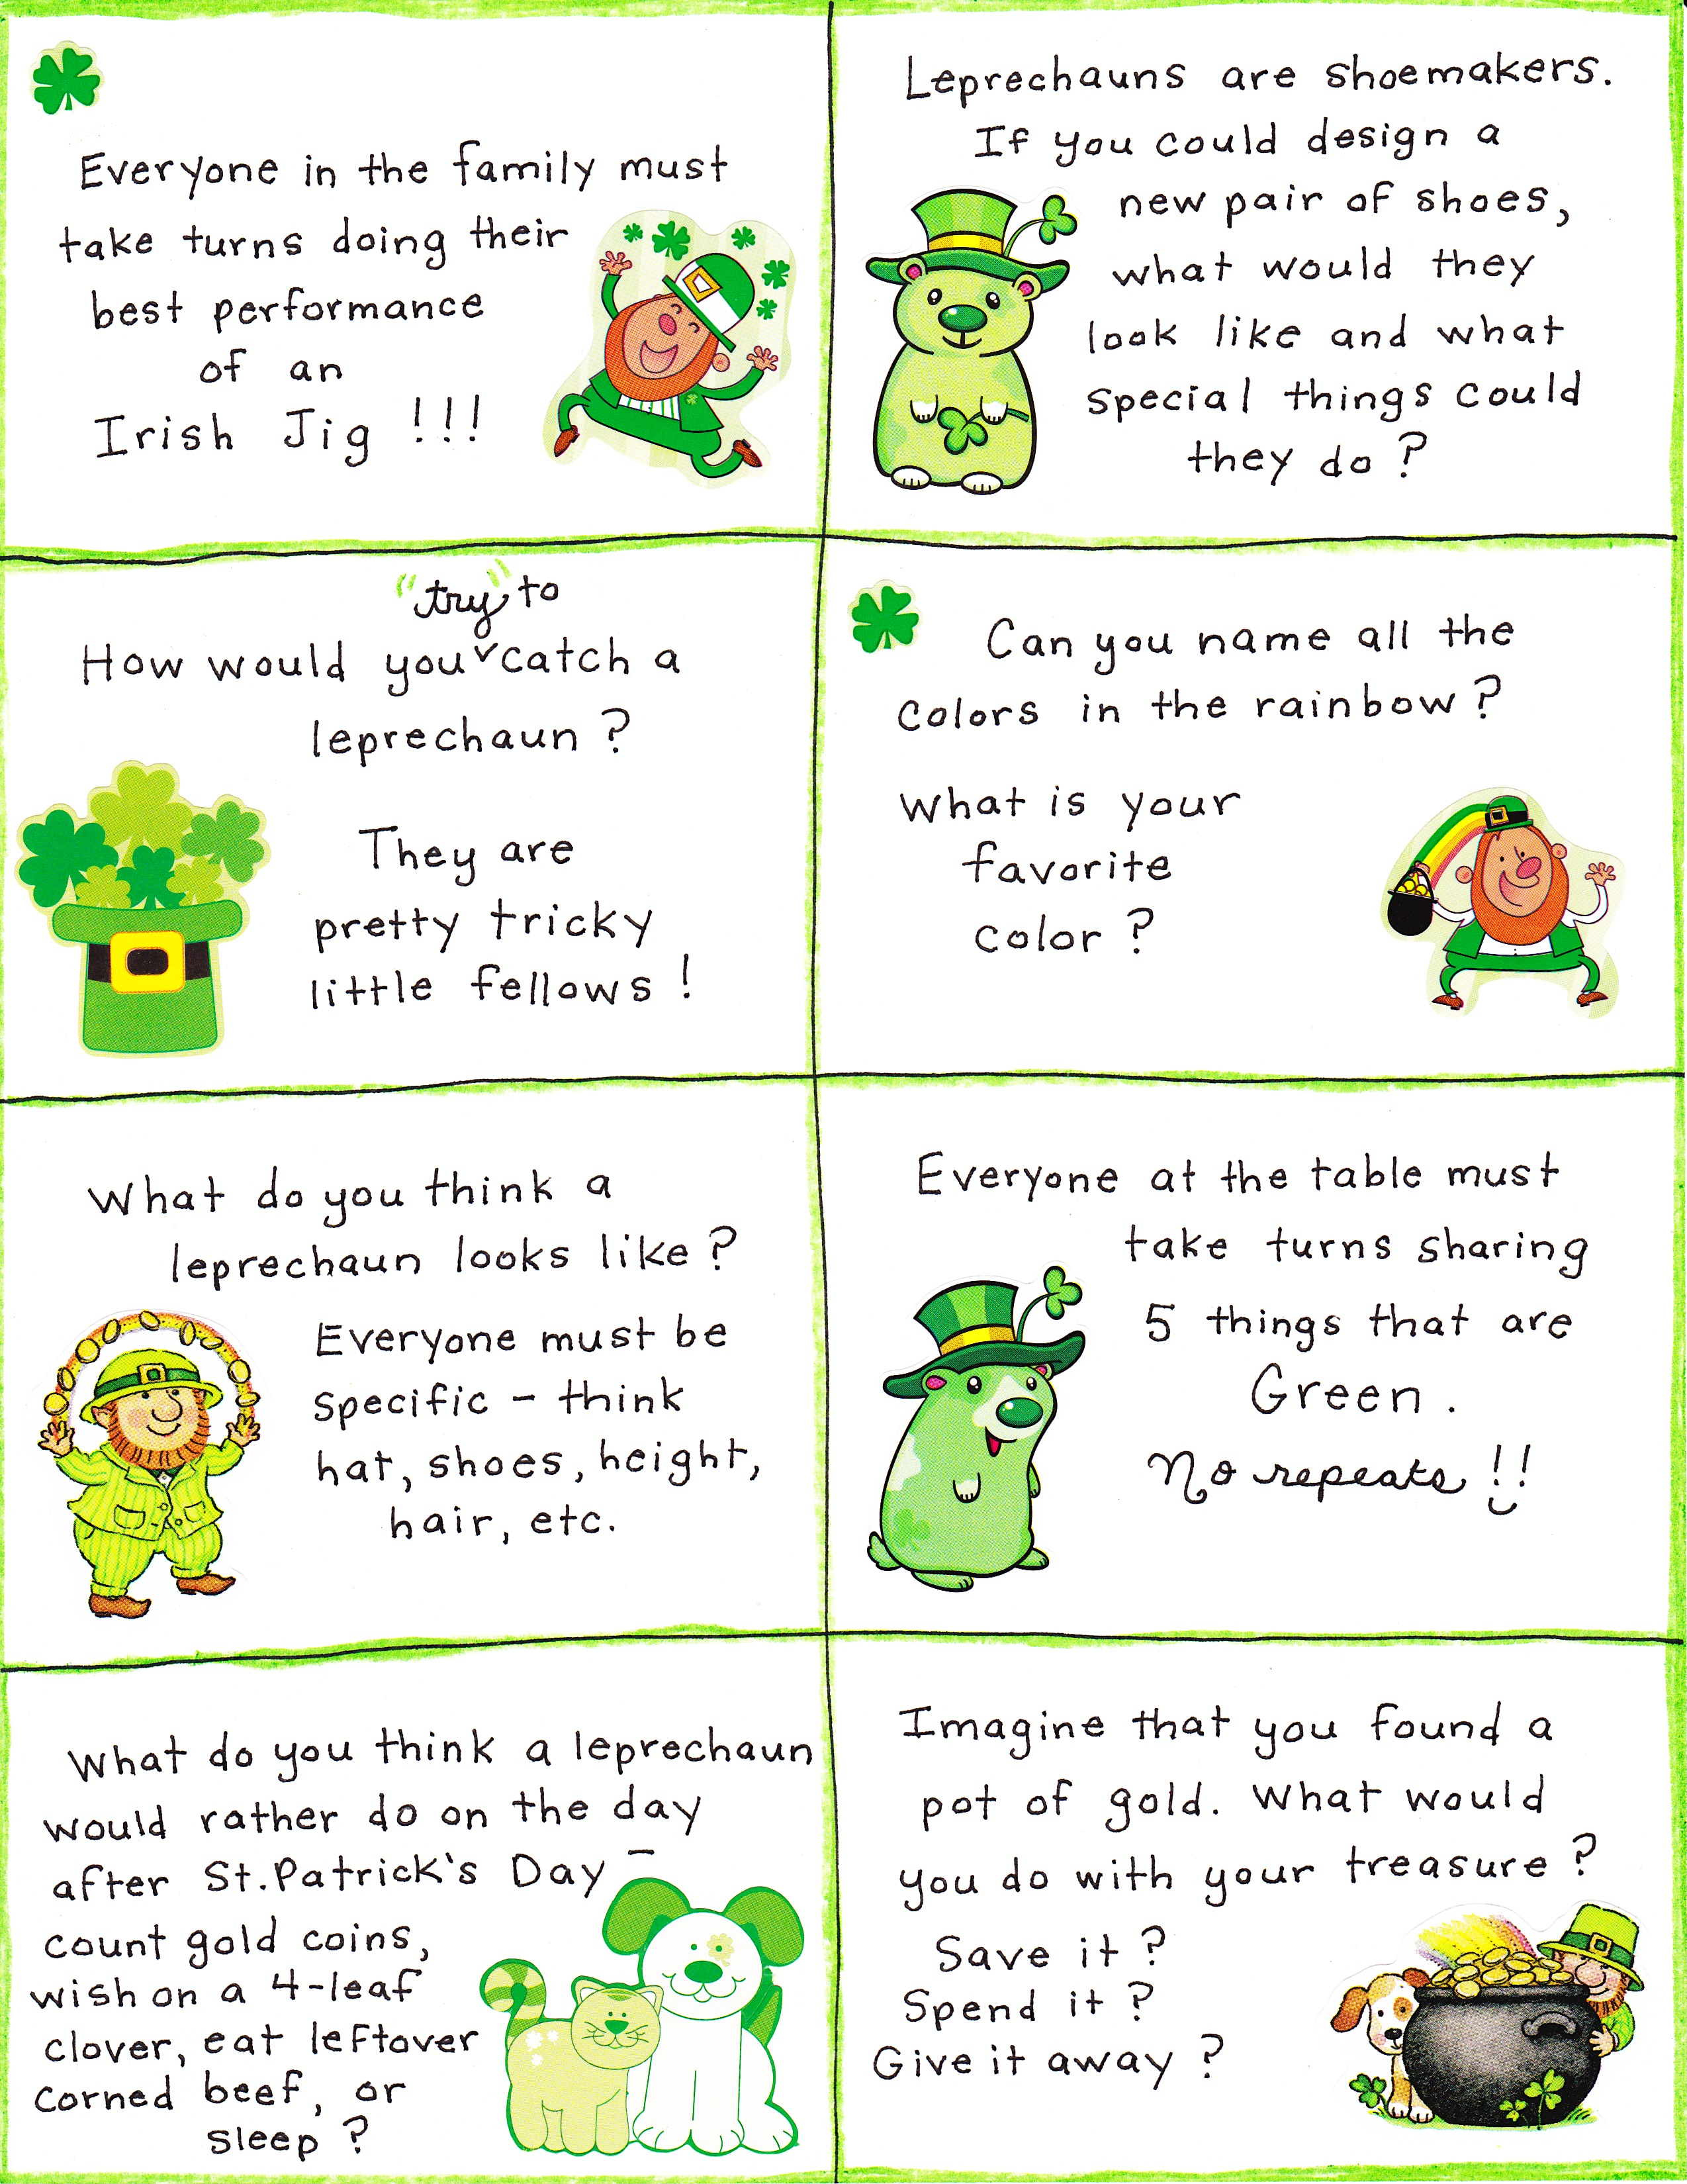 picture about St Patrick's Day Cards Free Printable named St. Patricks Working day Communication Playing cards - No cost Printable